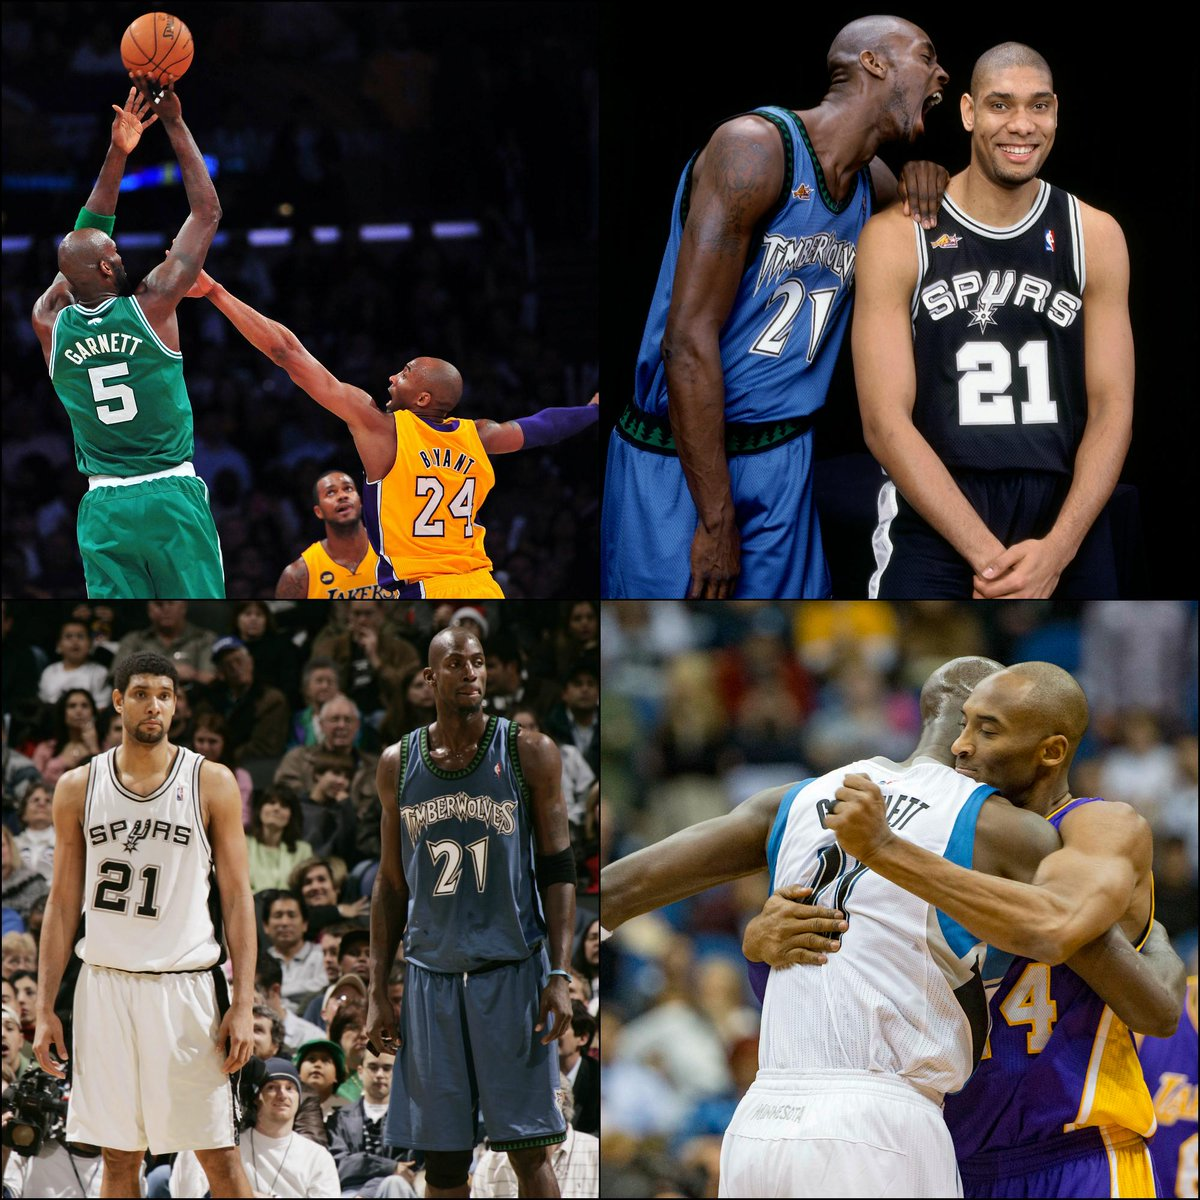 Nba Tv On Twitter Kobe Bryant Tim Duncan And Now Kevin